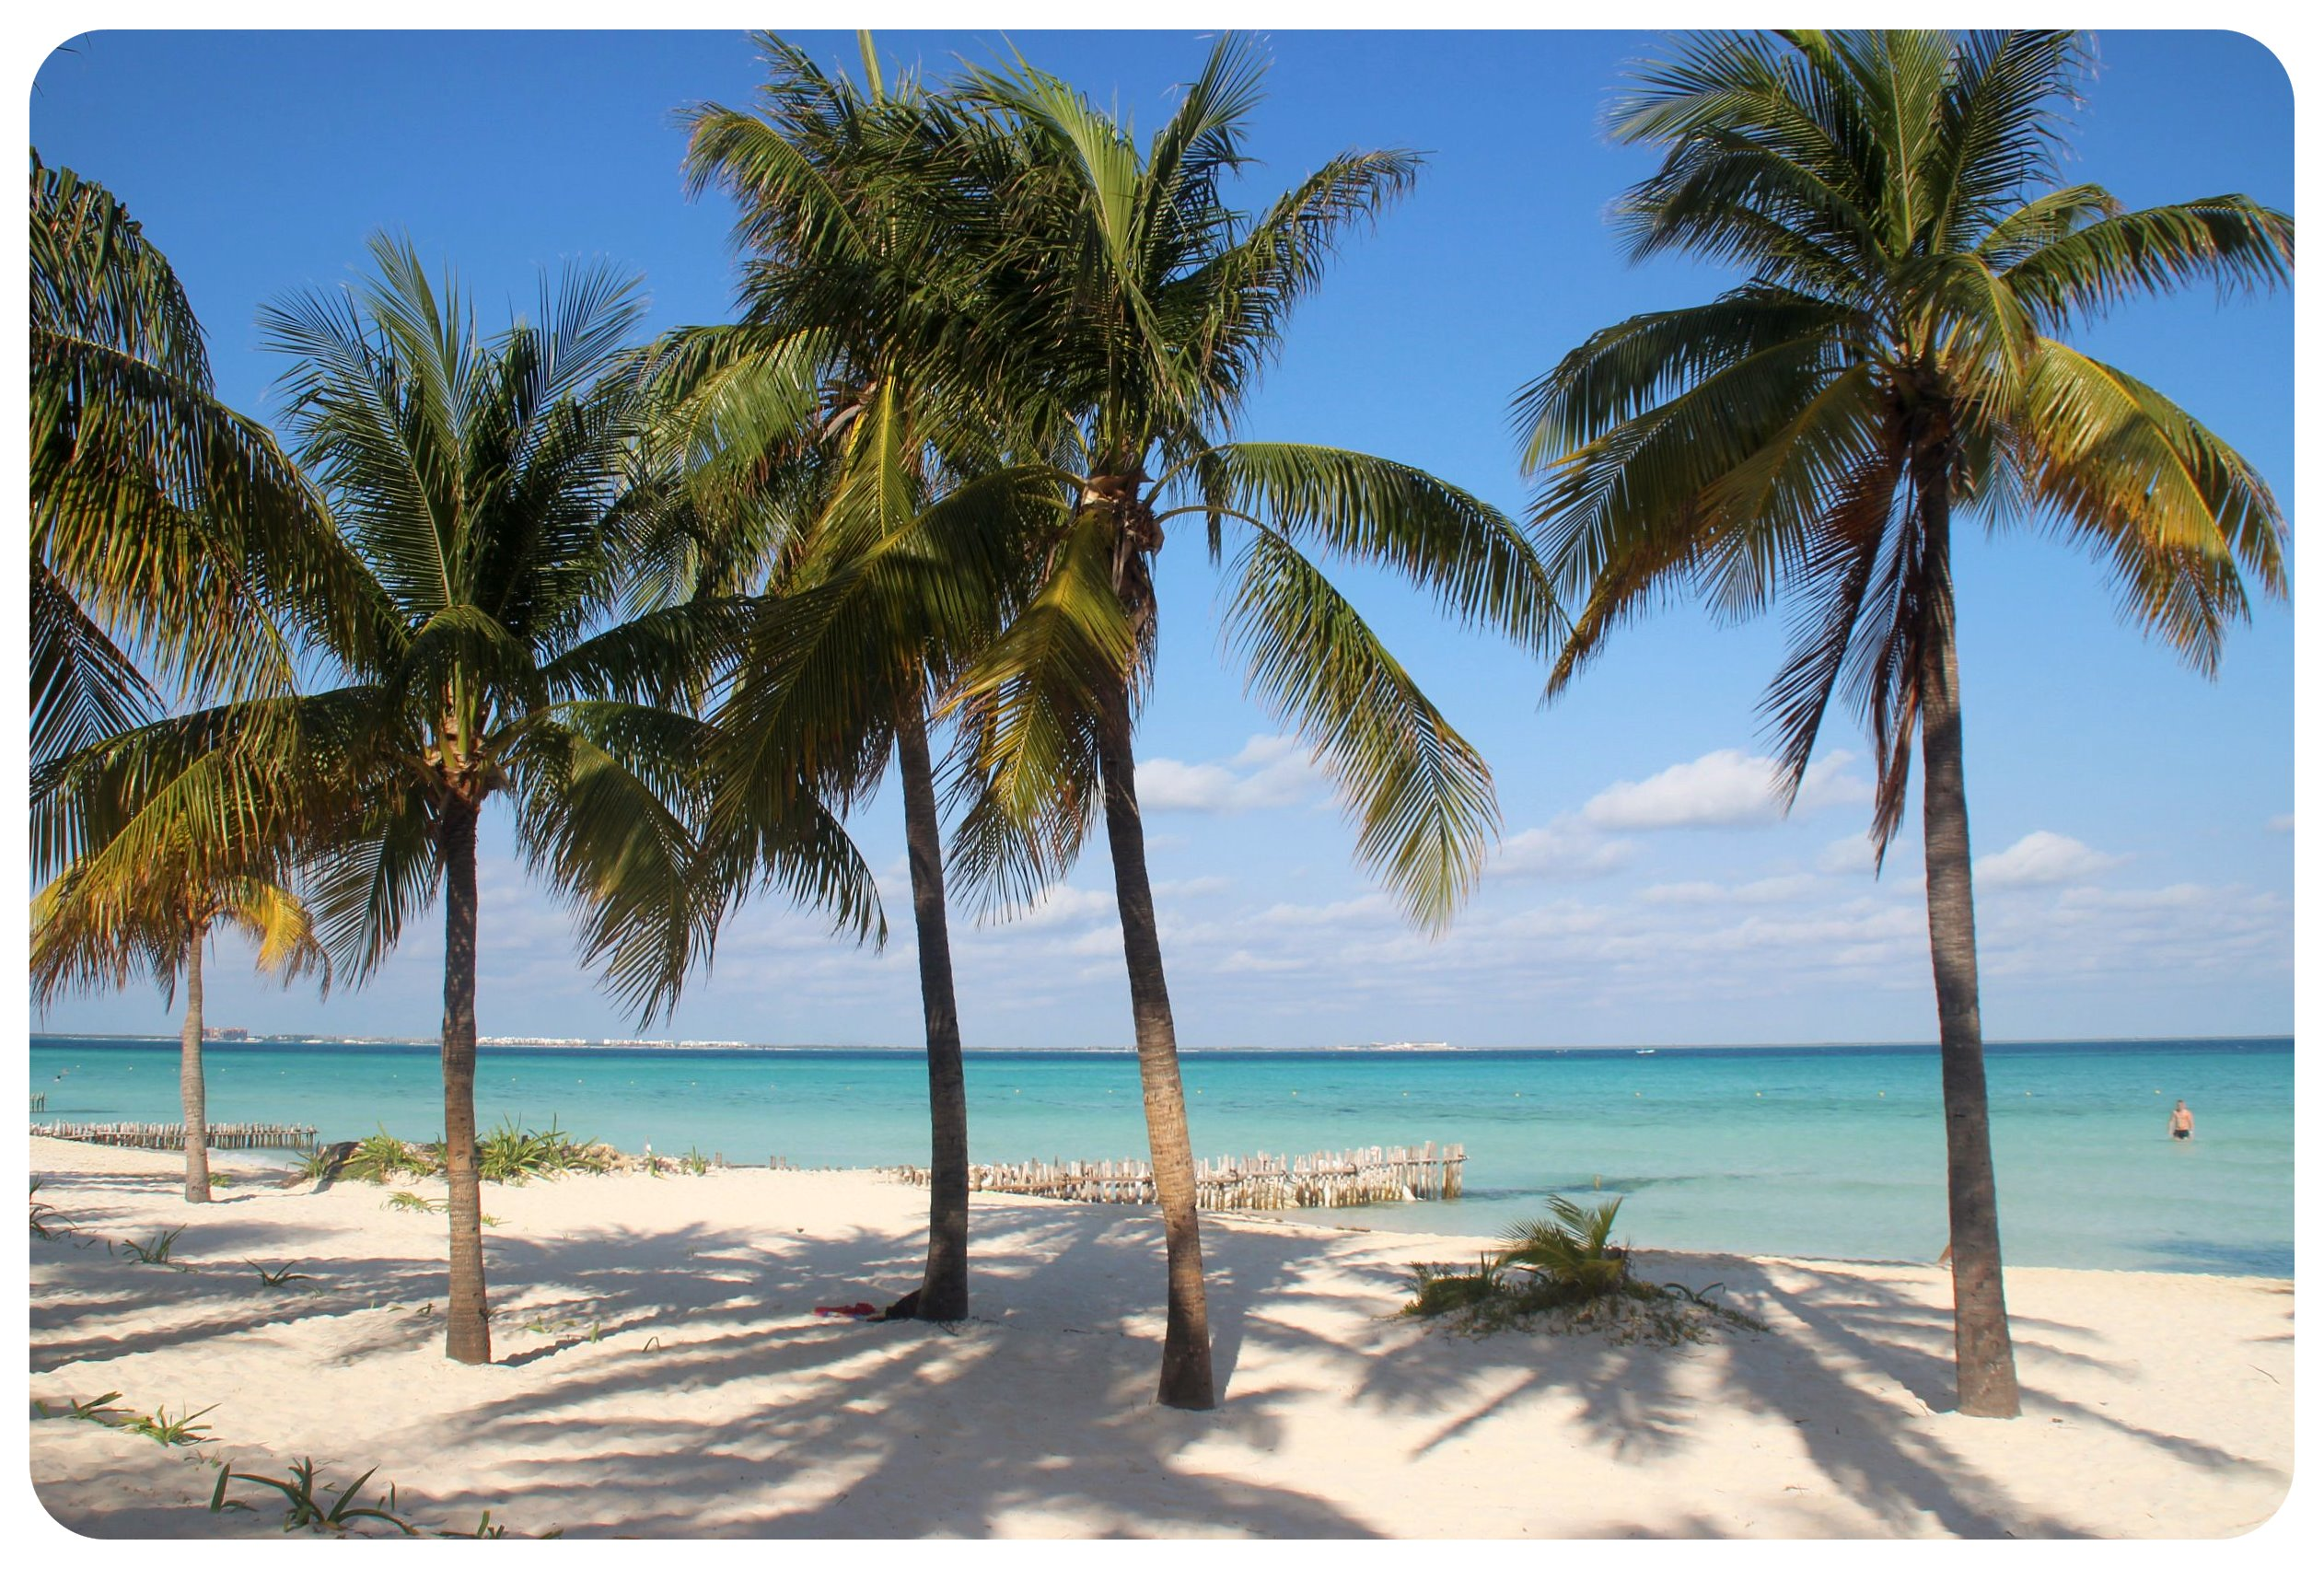 a699b902e1fbd Isla Mujeres  Finding Paradise in Mexico - GlobetrotterGirls